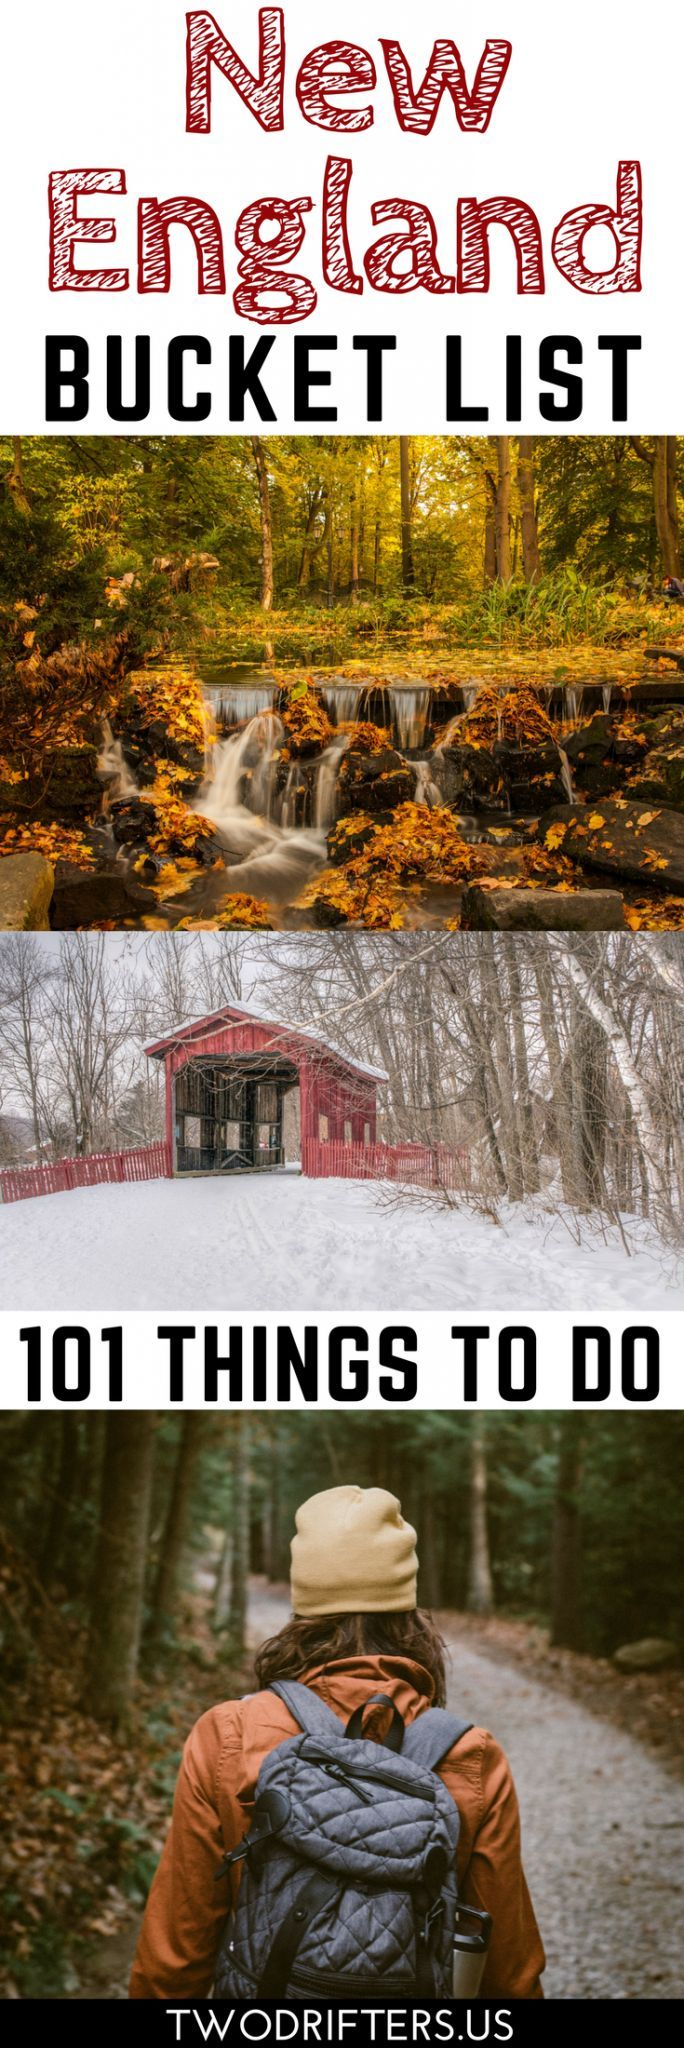 There are an endless number of things to do in New England. The 6 states of VT, NH, ME, MA, CT, & RI offer activities galore. Here's 101 of the very best.